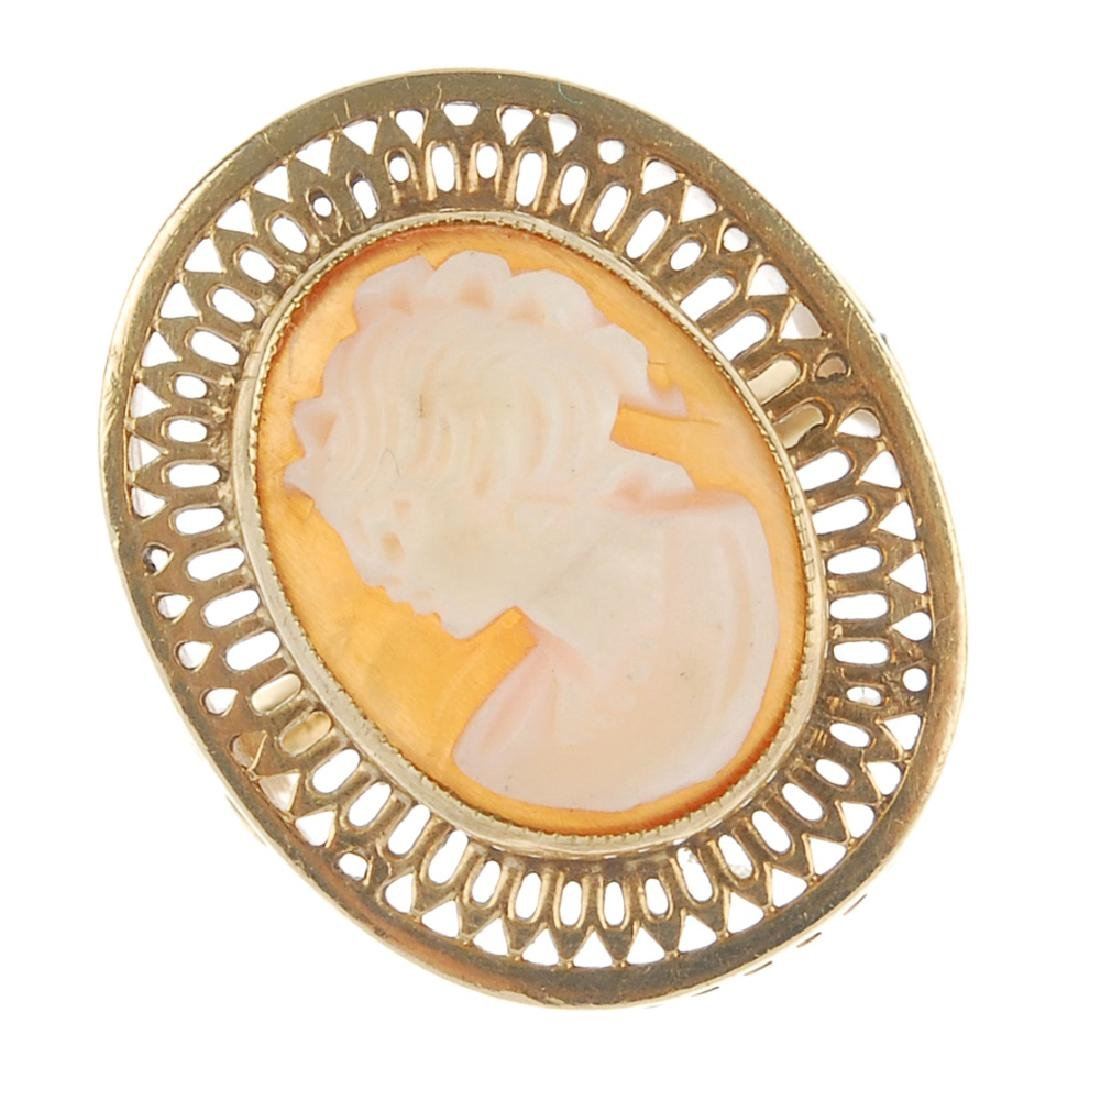 A cameo ring. Designed as an oval shell cameo depicting